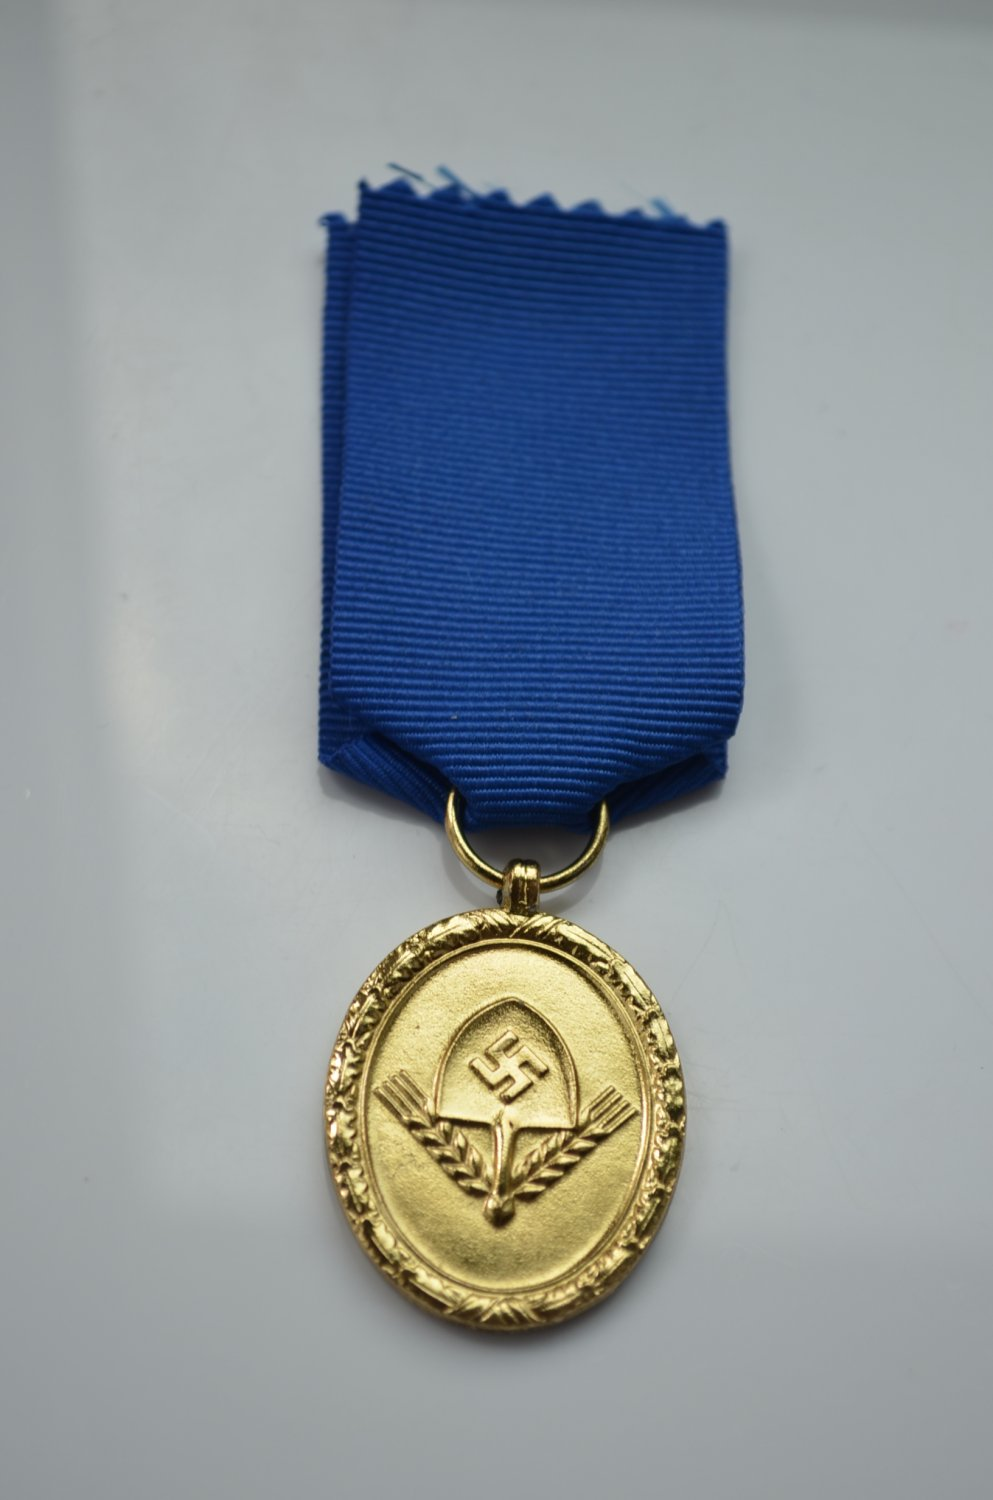 WWII GERMAN GOLD MEDAL LONG SERVICE AWARDS OF THE RAD